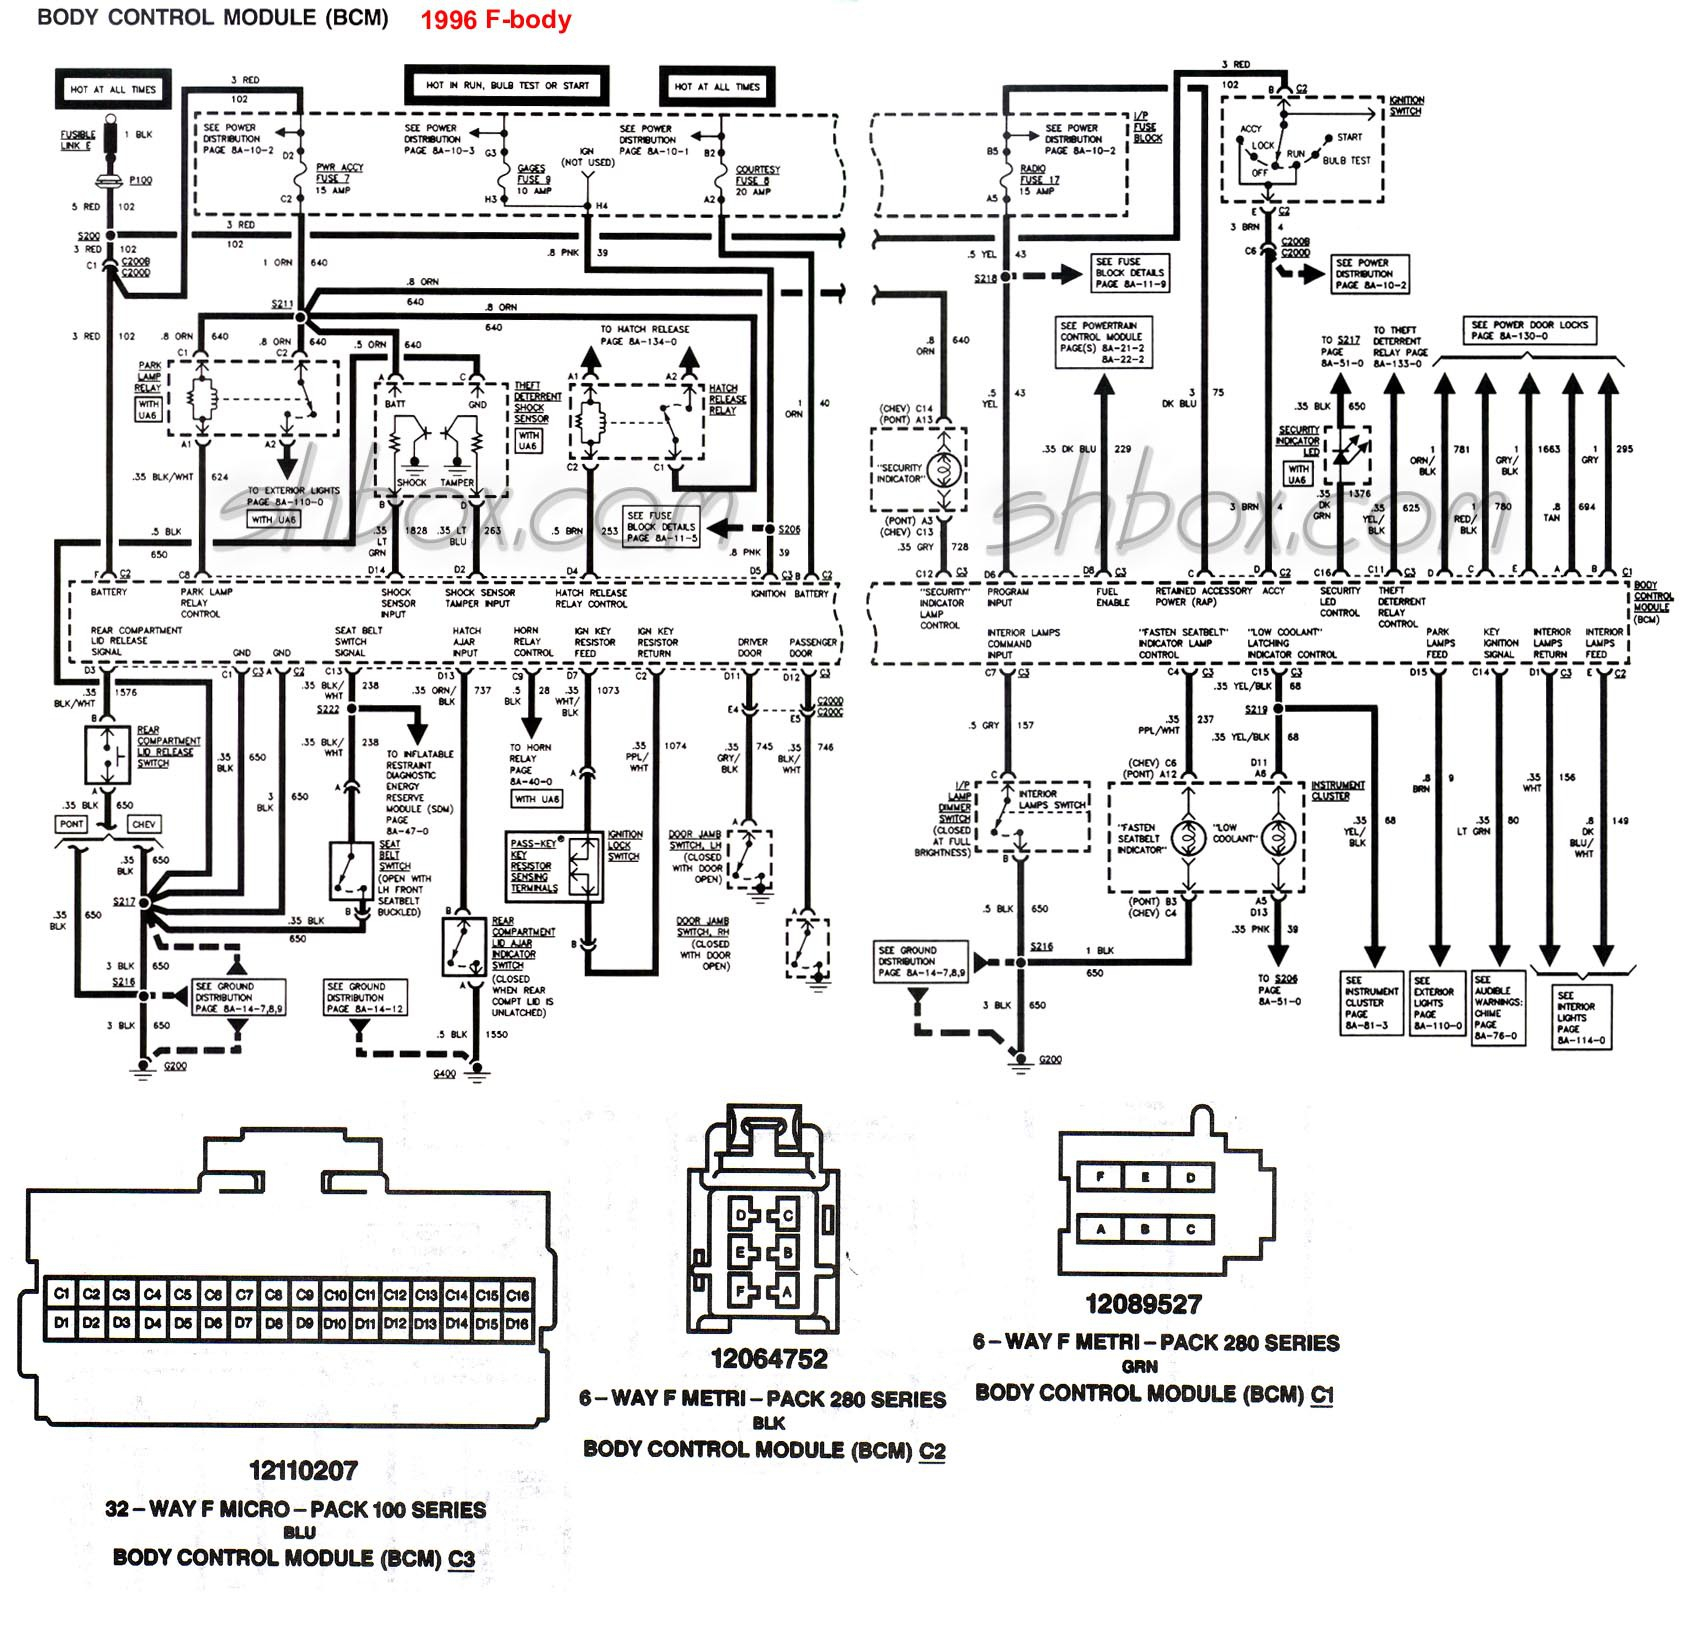 kenwood wiring diagram wiring diagram databasekenwood car stereo diagram  wiring diagram database kenwood radio wiring kenwood